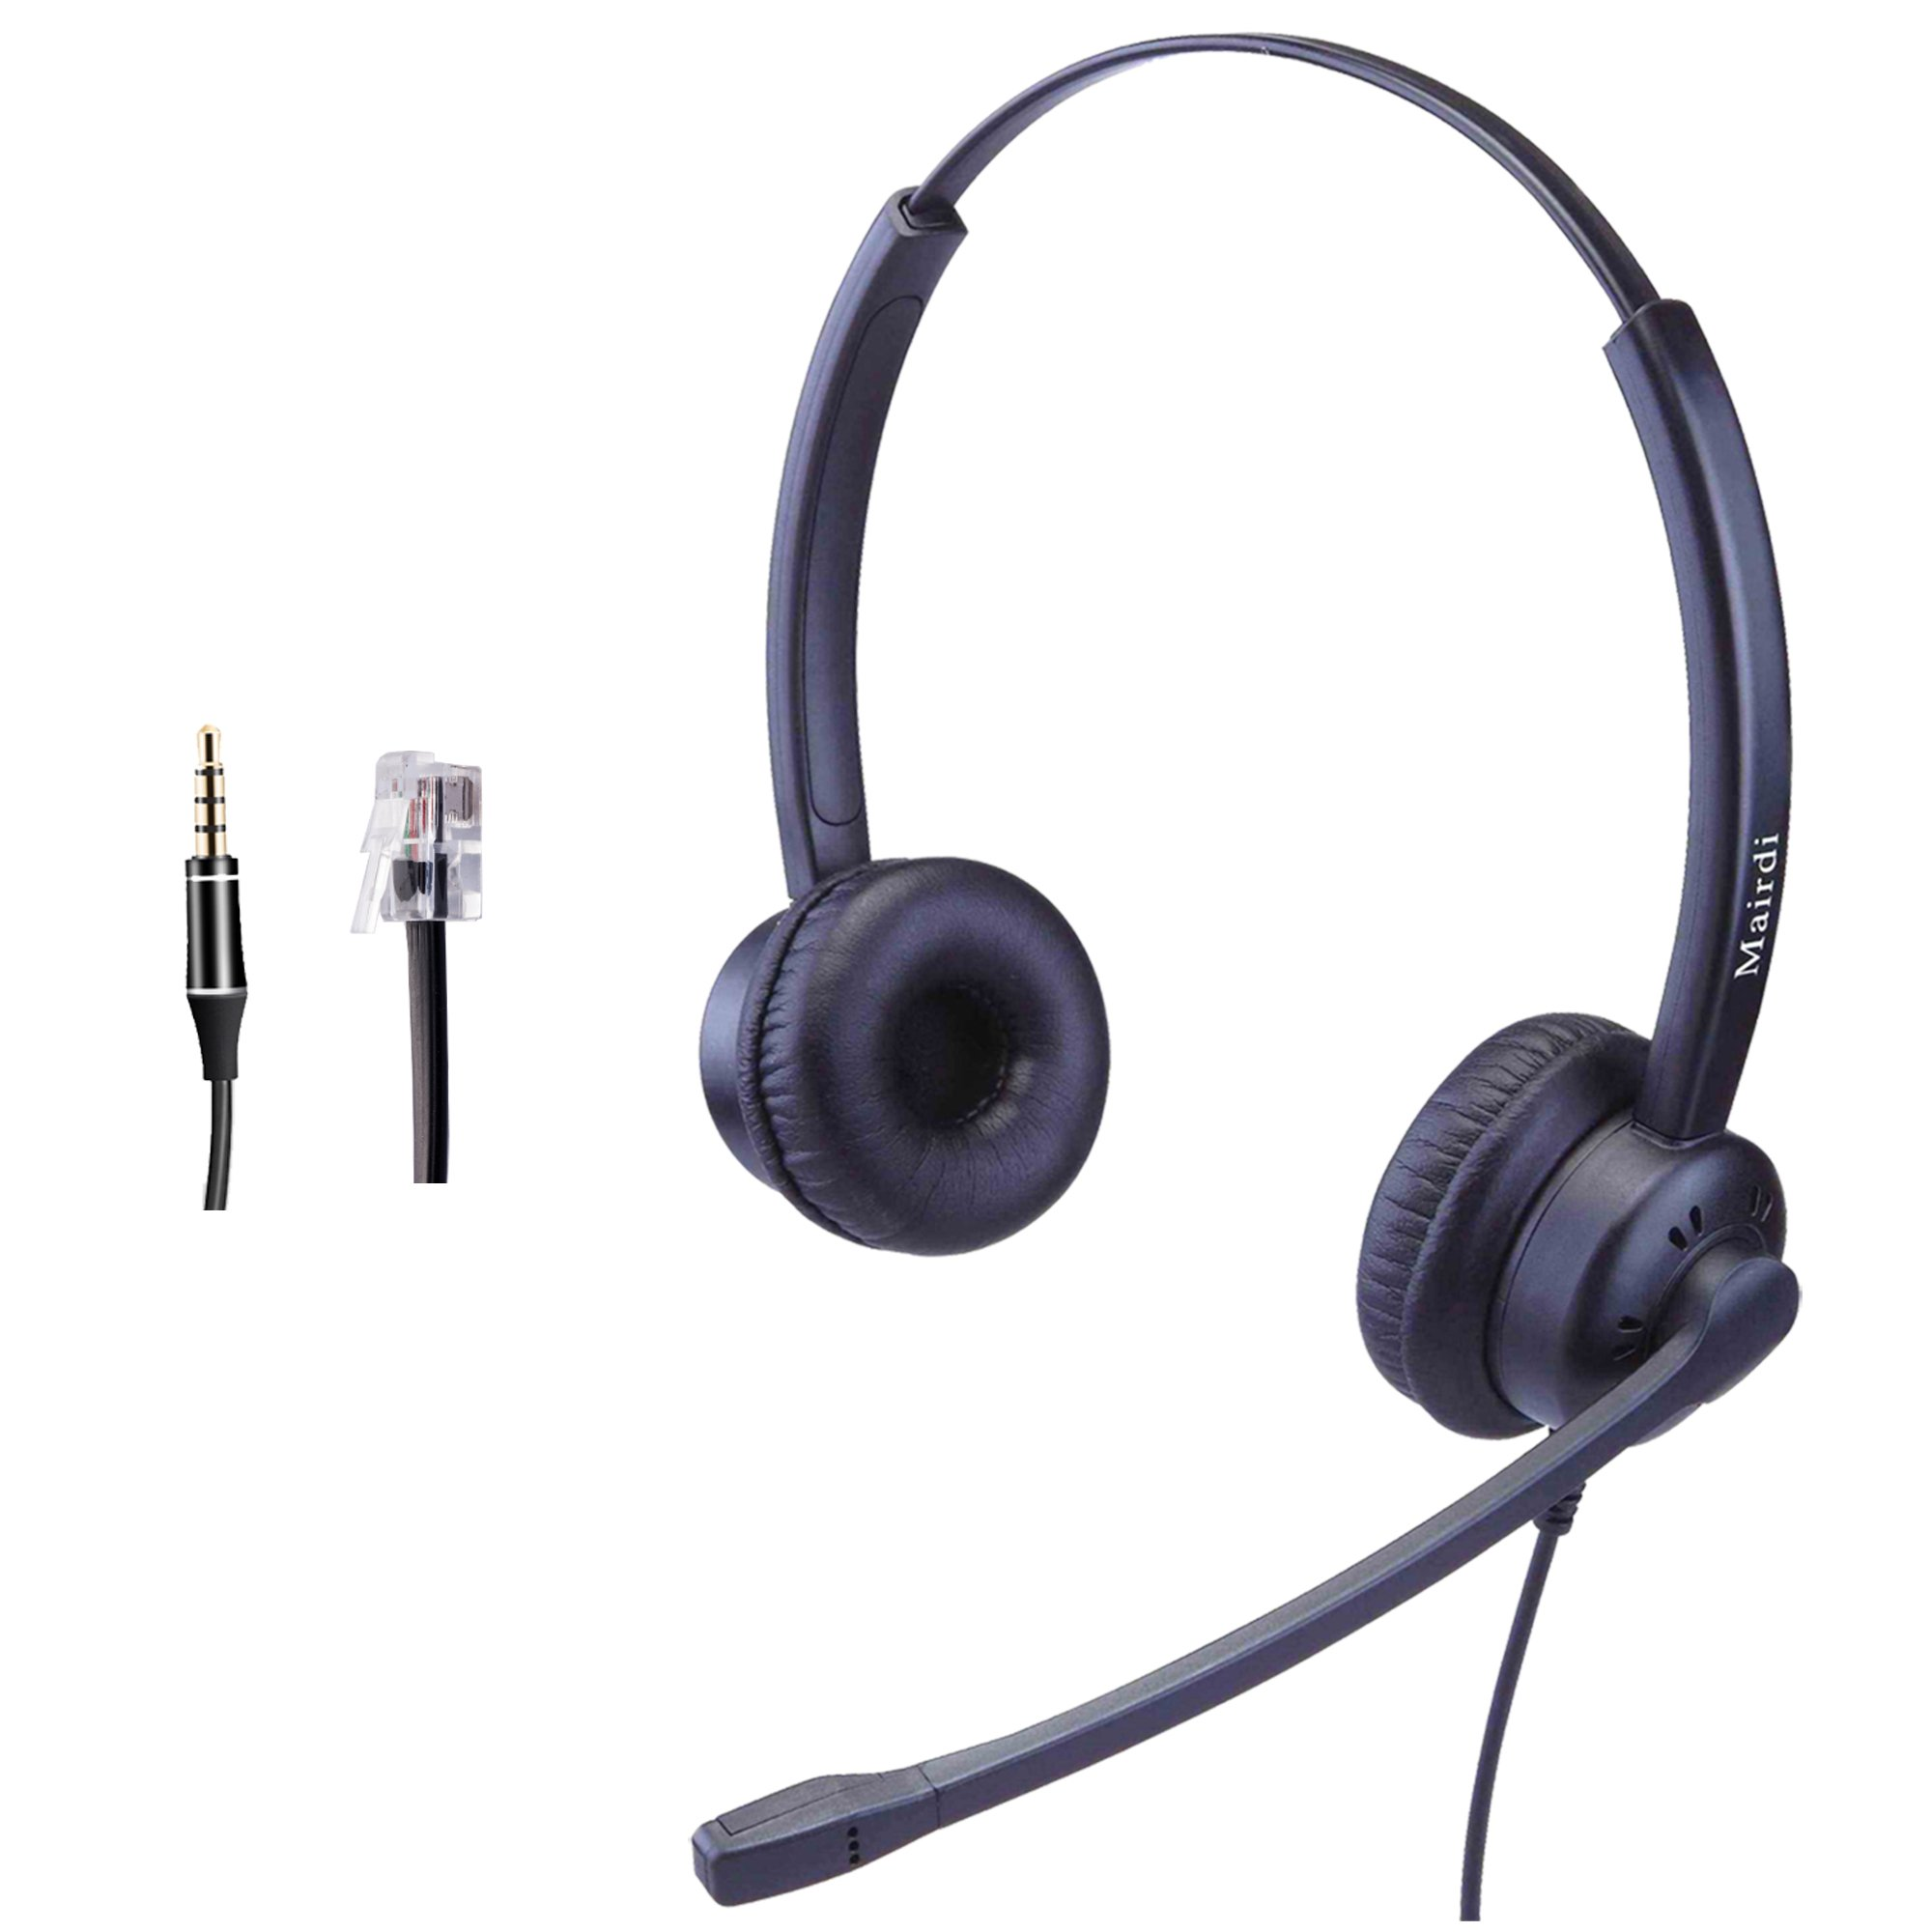 Telephone Headset with RJ9 Jack and Noise Cancelling Microphone for Call Centers Offices with Two Connectors RJ9 and 3.5mm Compatible with Avaya Nortel Aastra Toshiba Jabra by MAIRDI